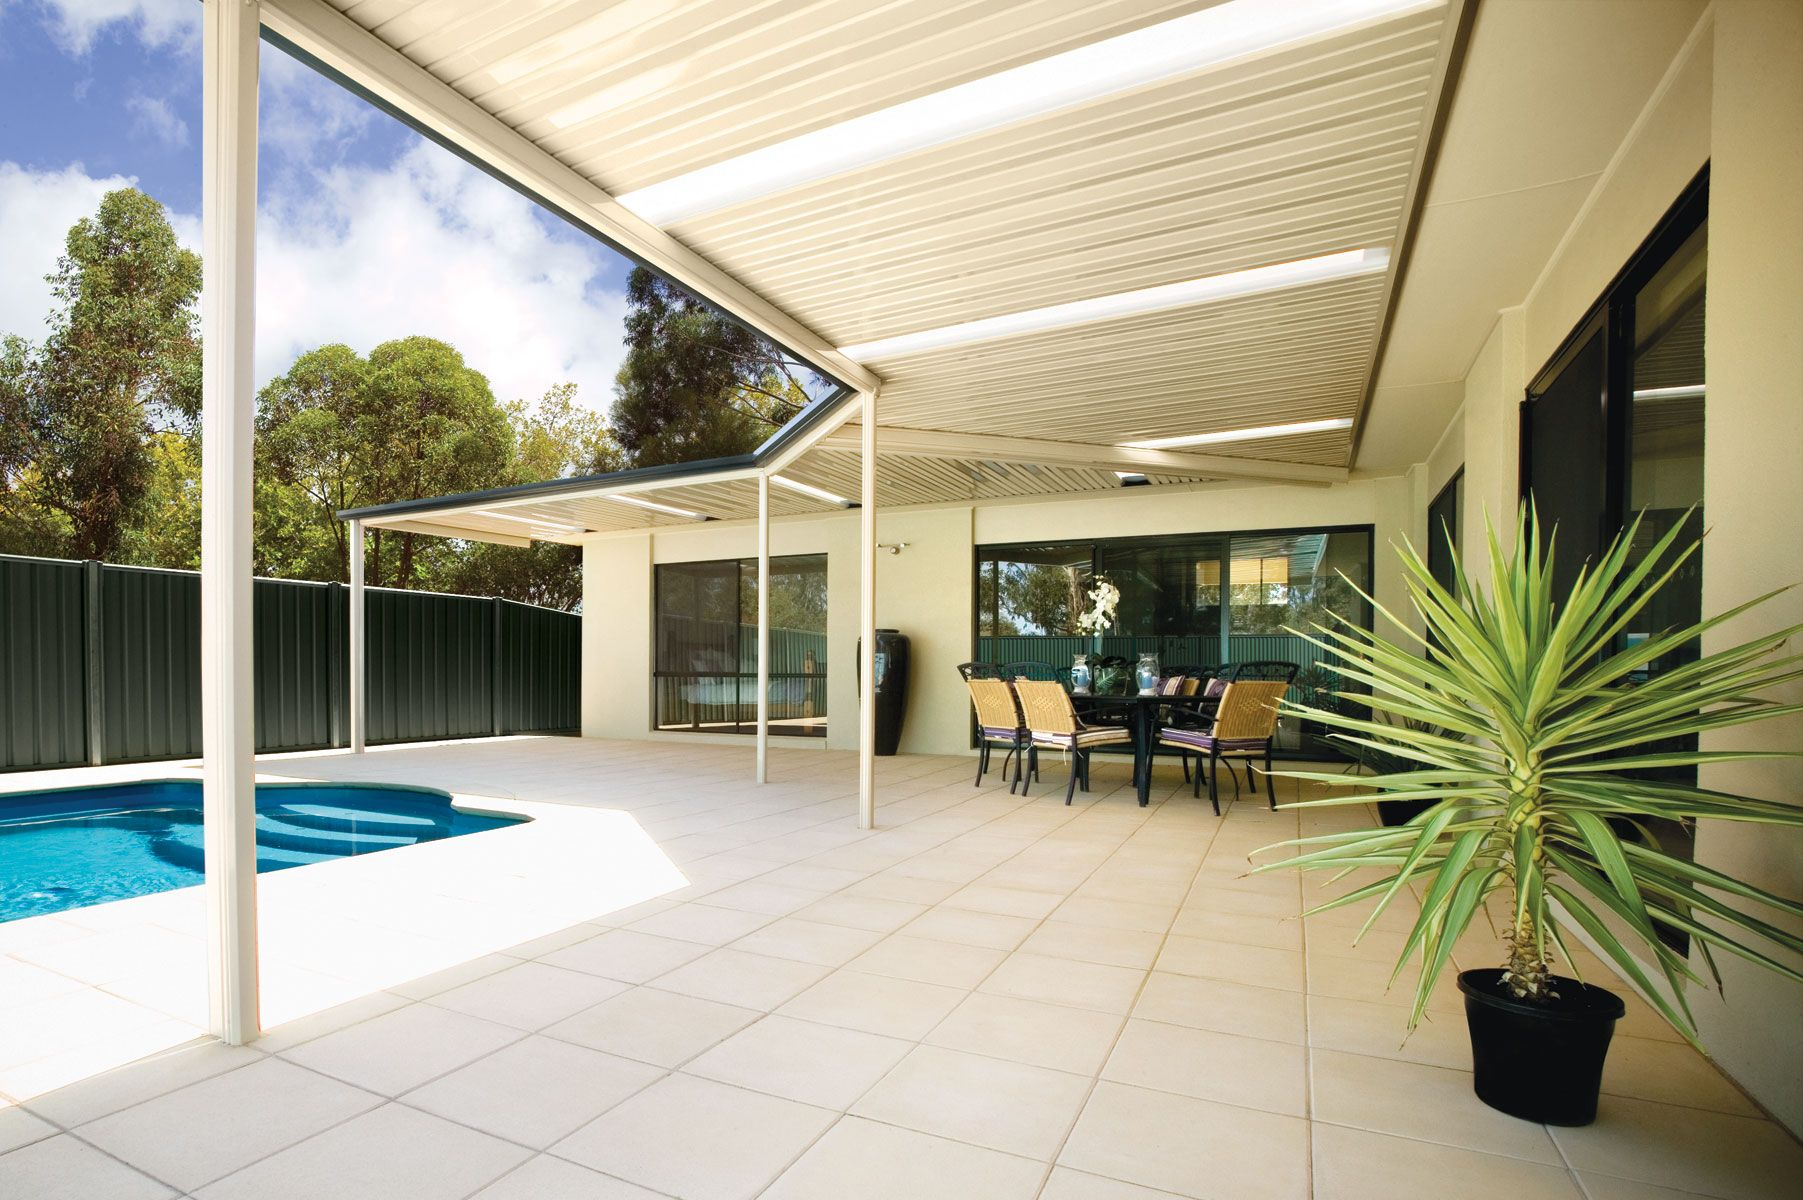 A Quality Flat Roof Patio Is An Easy And Inexpensive Way To Add Value To  Your Home. By Expanding Your Outdoor Living Space You Can Make Your Home Su2026